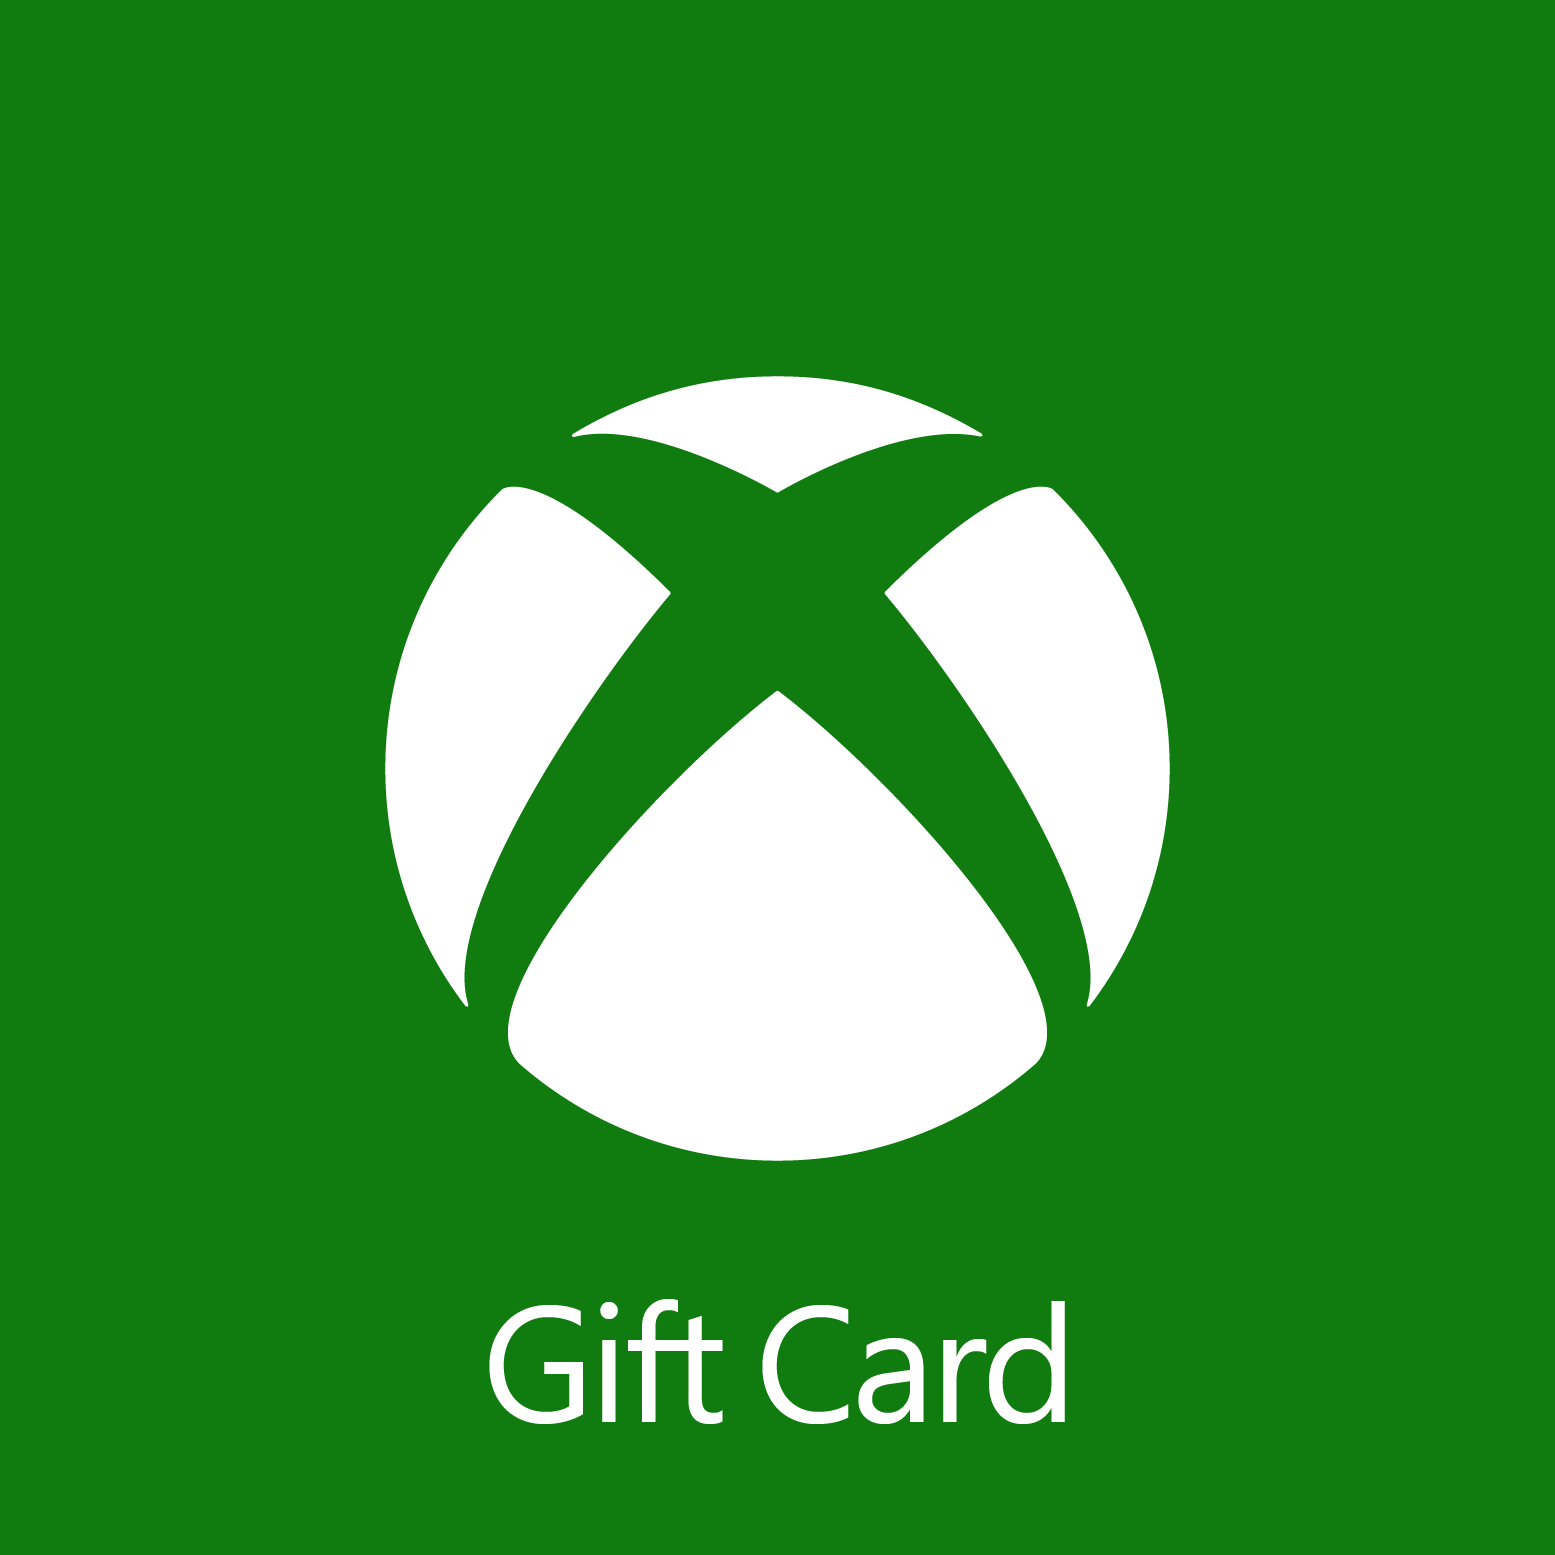 RE1Xx20?ver=255f - $38.00 Xbox Digital Gift Card